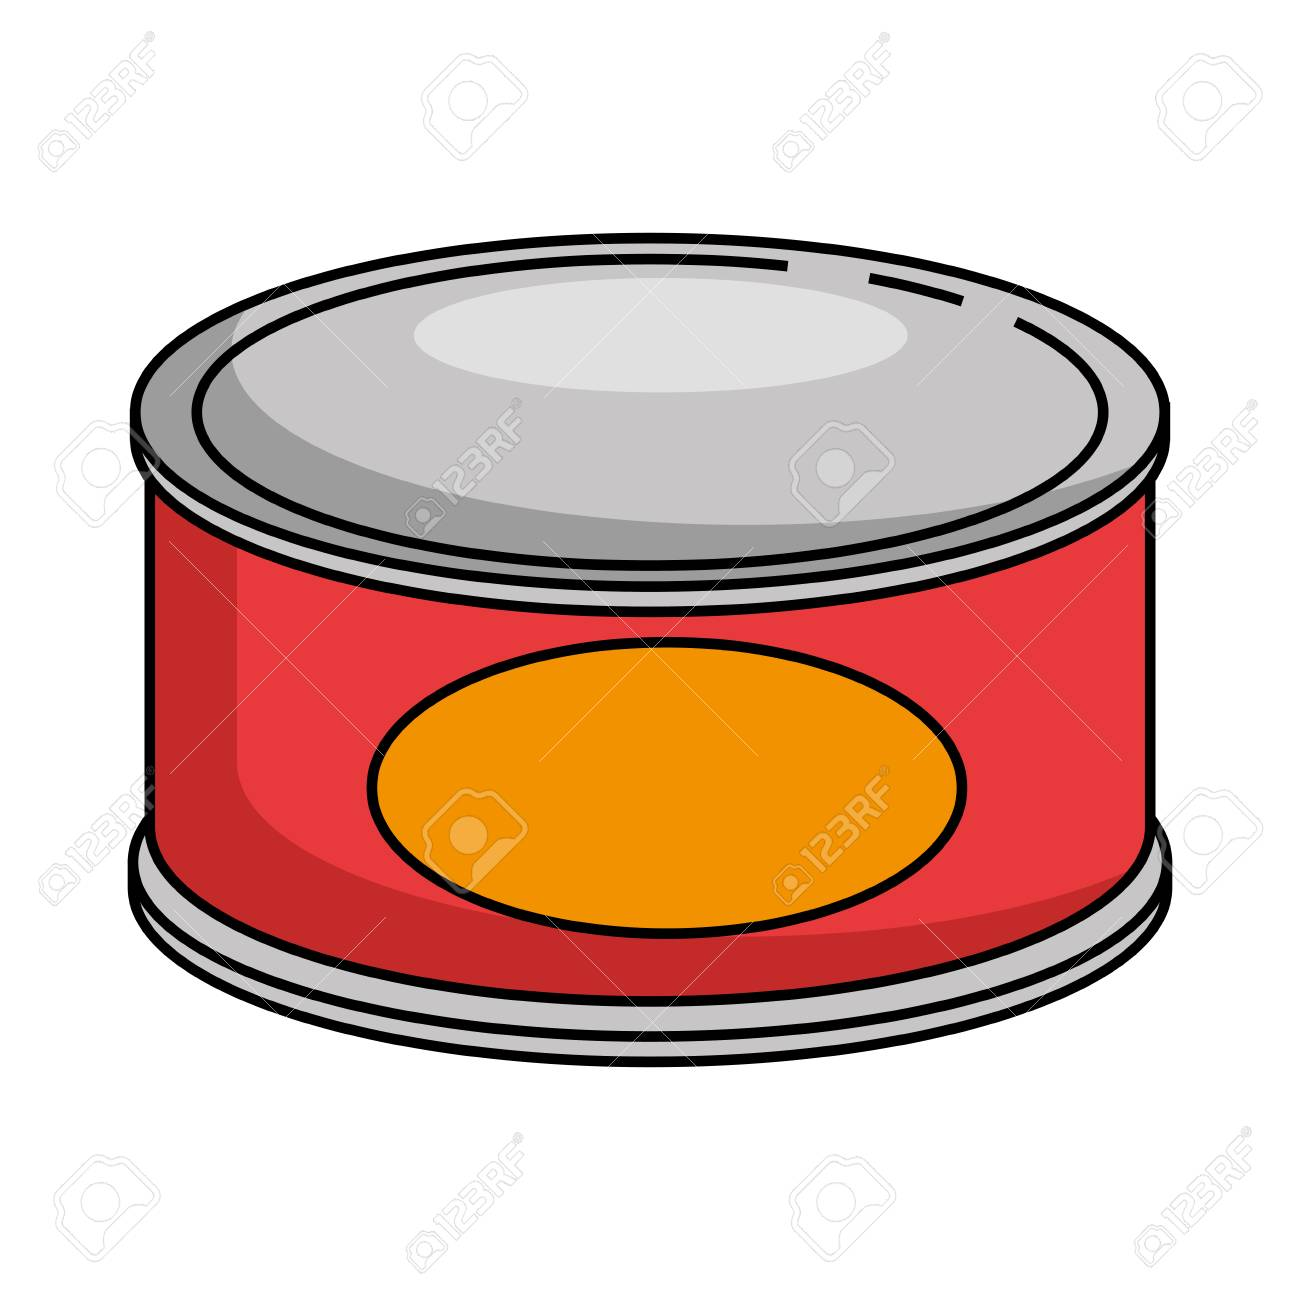 cat food can icon vector illustration design.